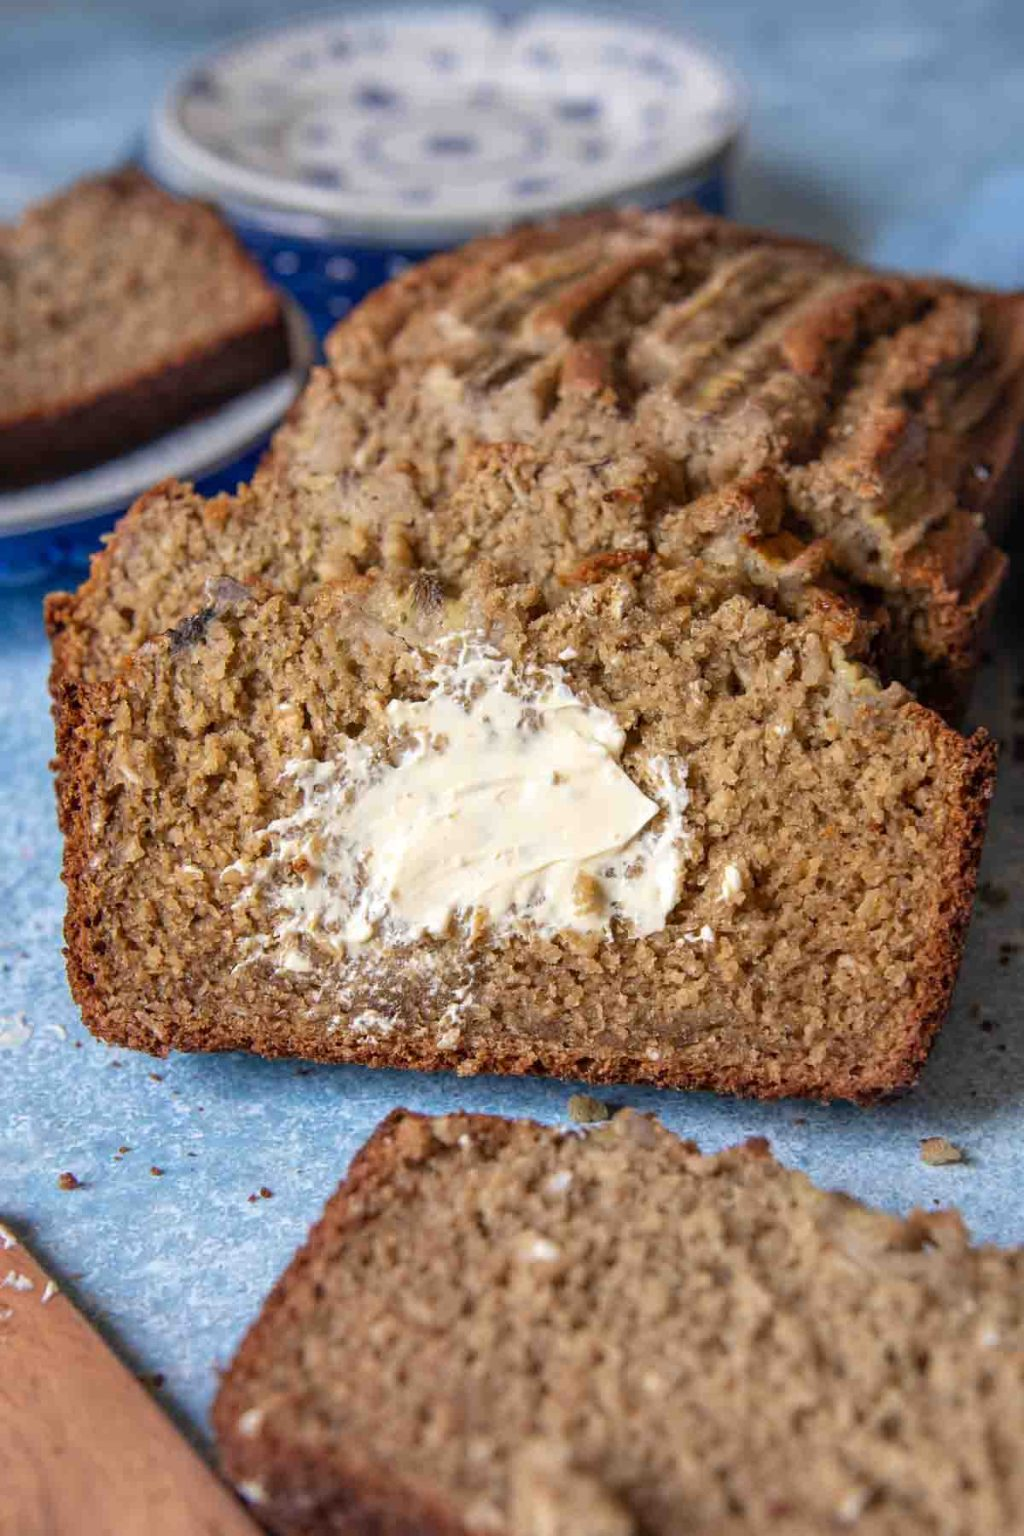 a slice of bread with melted butter spread on